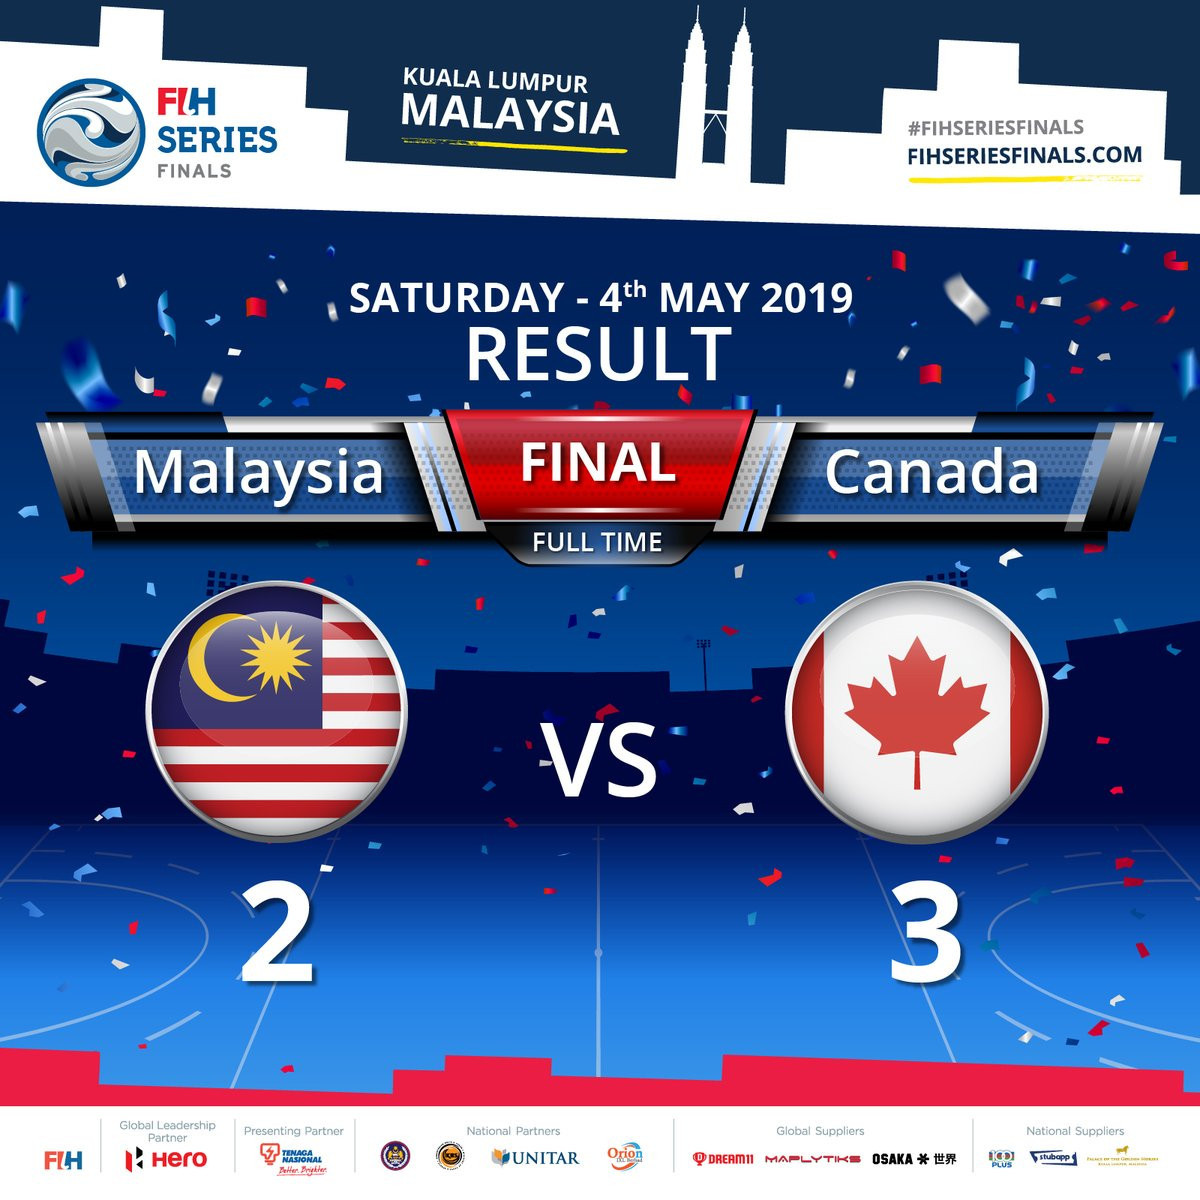 Canada won the final in the FIH Series Finals, defeating hosts Malaysia 3-2 ©FIH